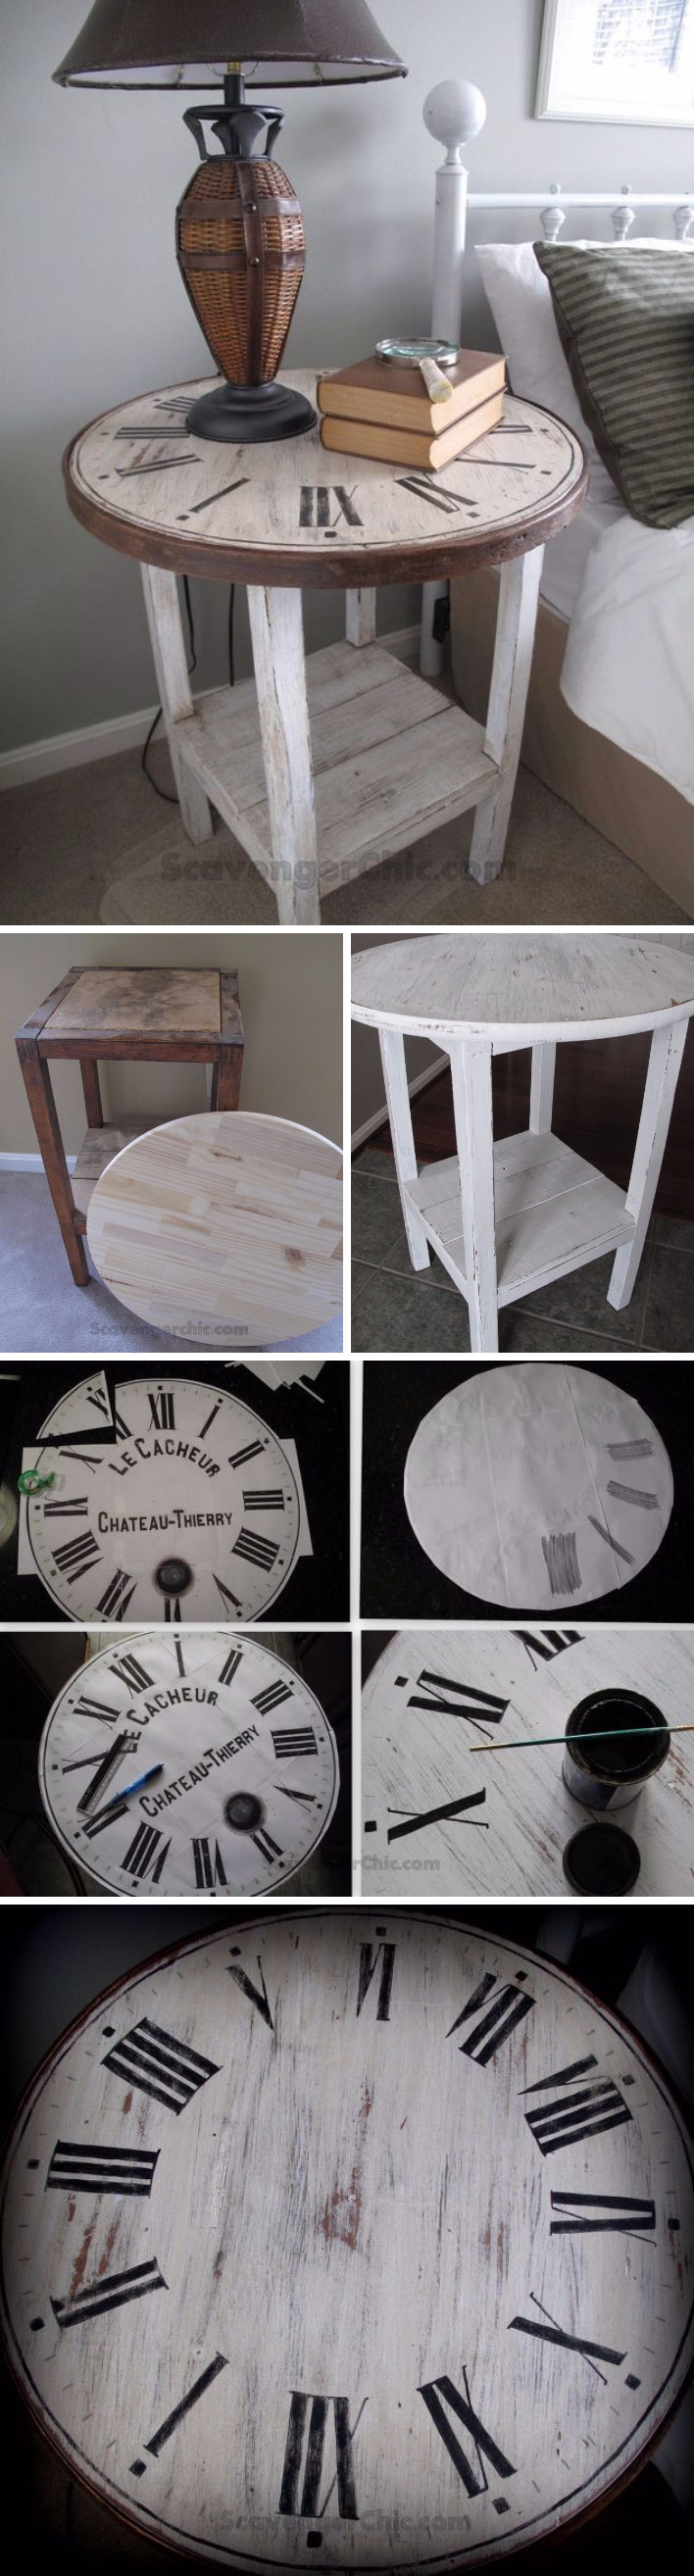 diy side table ideas with lots tutorials gold accent vintage clock entryway chest drawers mirrored tray for coffee decorative chairs pretty beds nightstand most comfortable drum